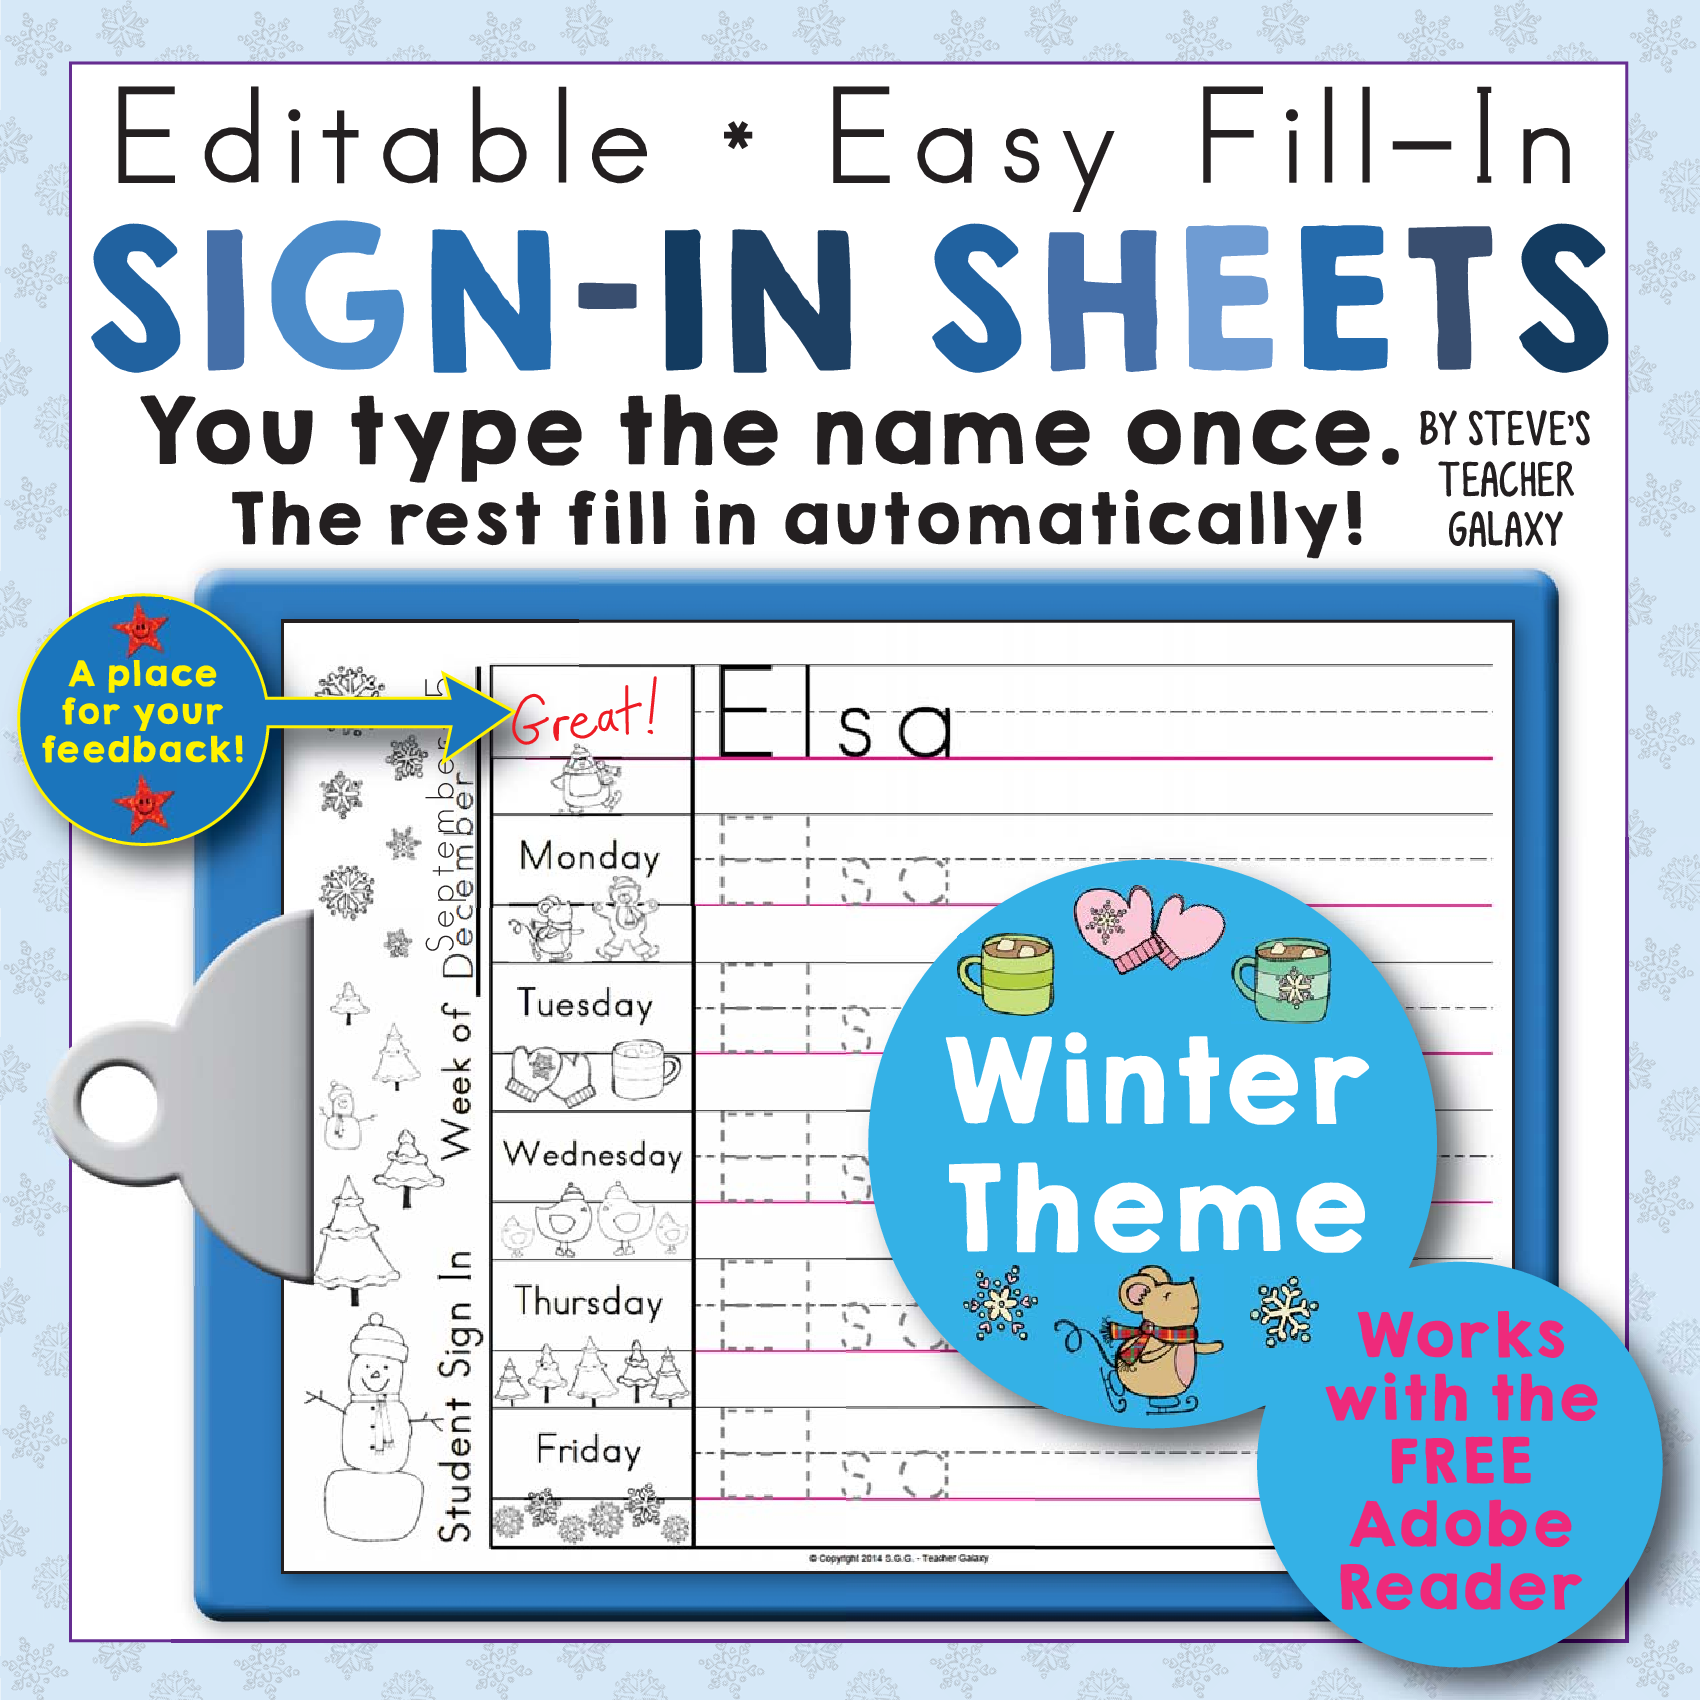 Editable Print Practice Weekly Sign In Sheets - Winter Theme